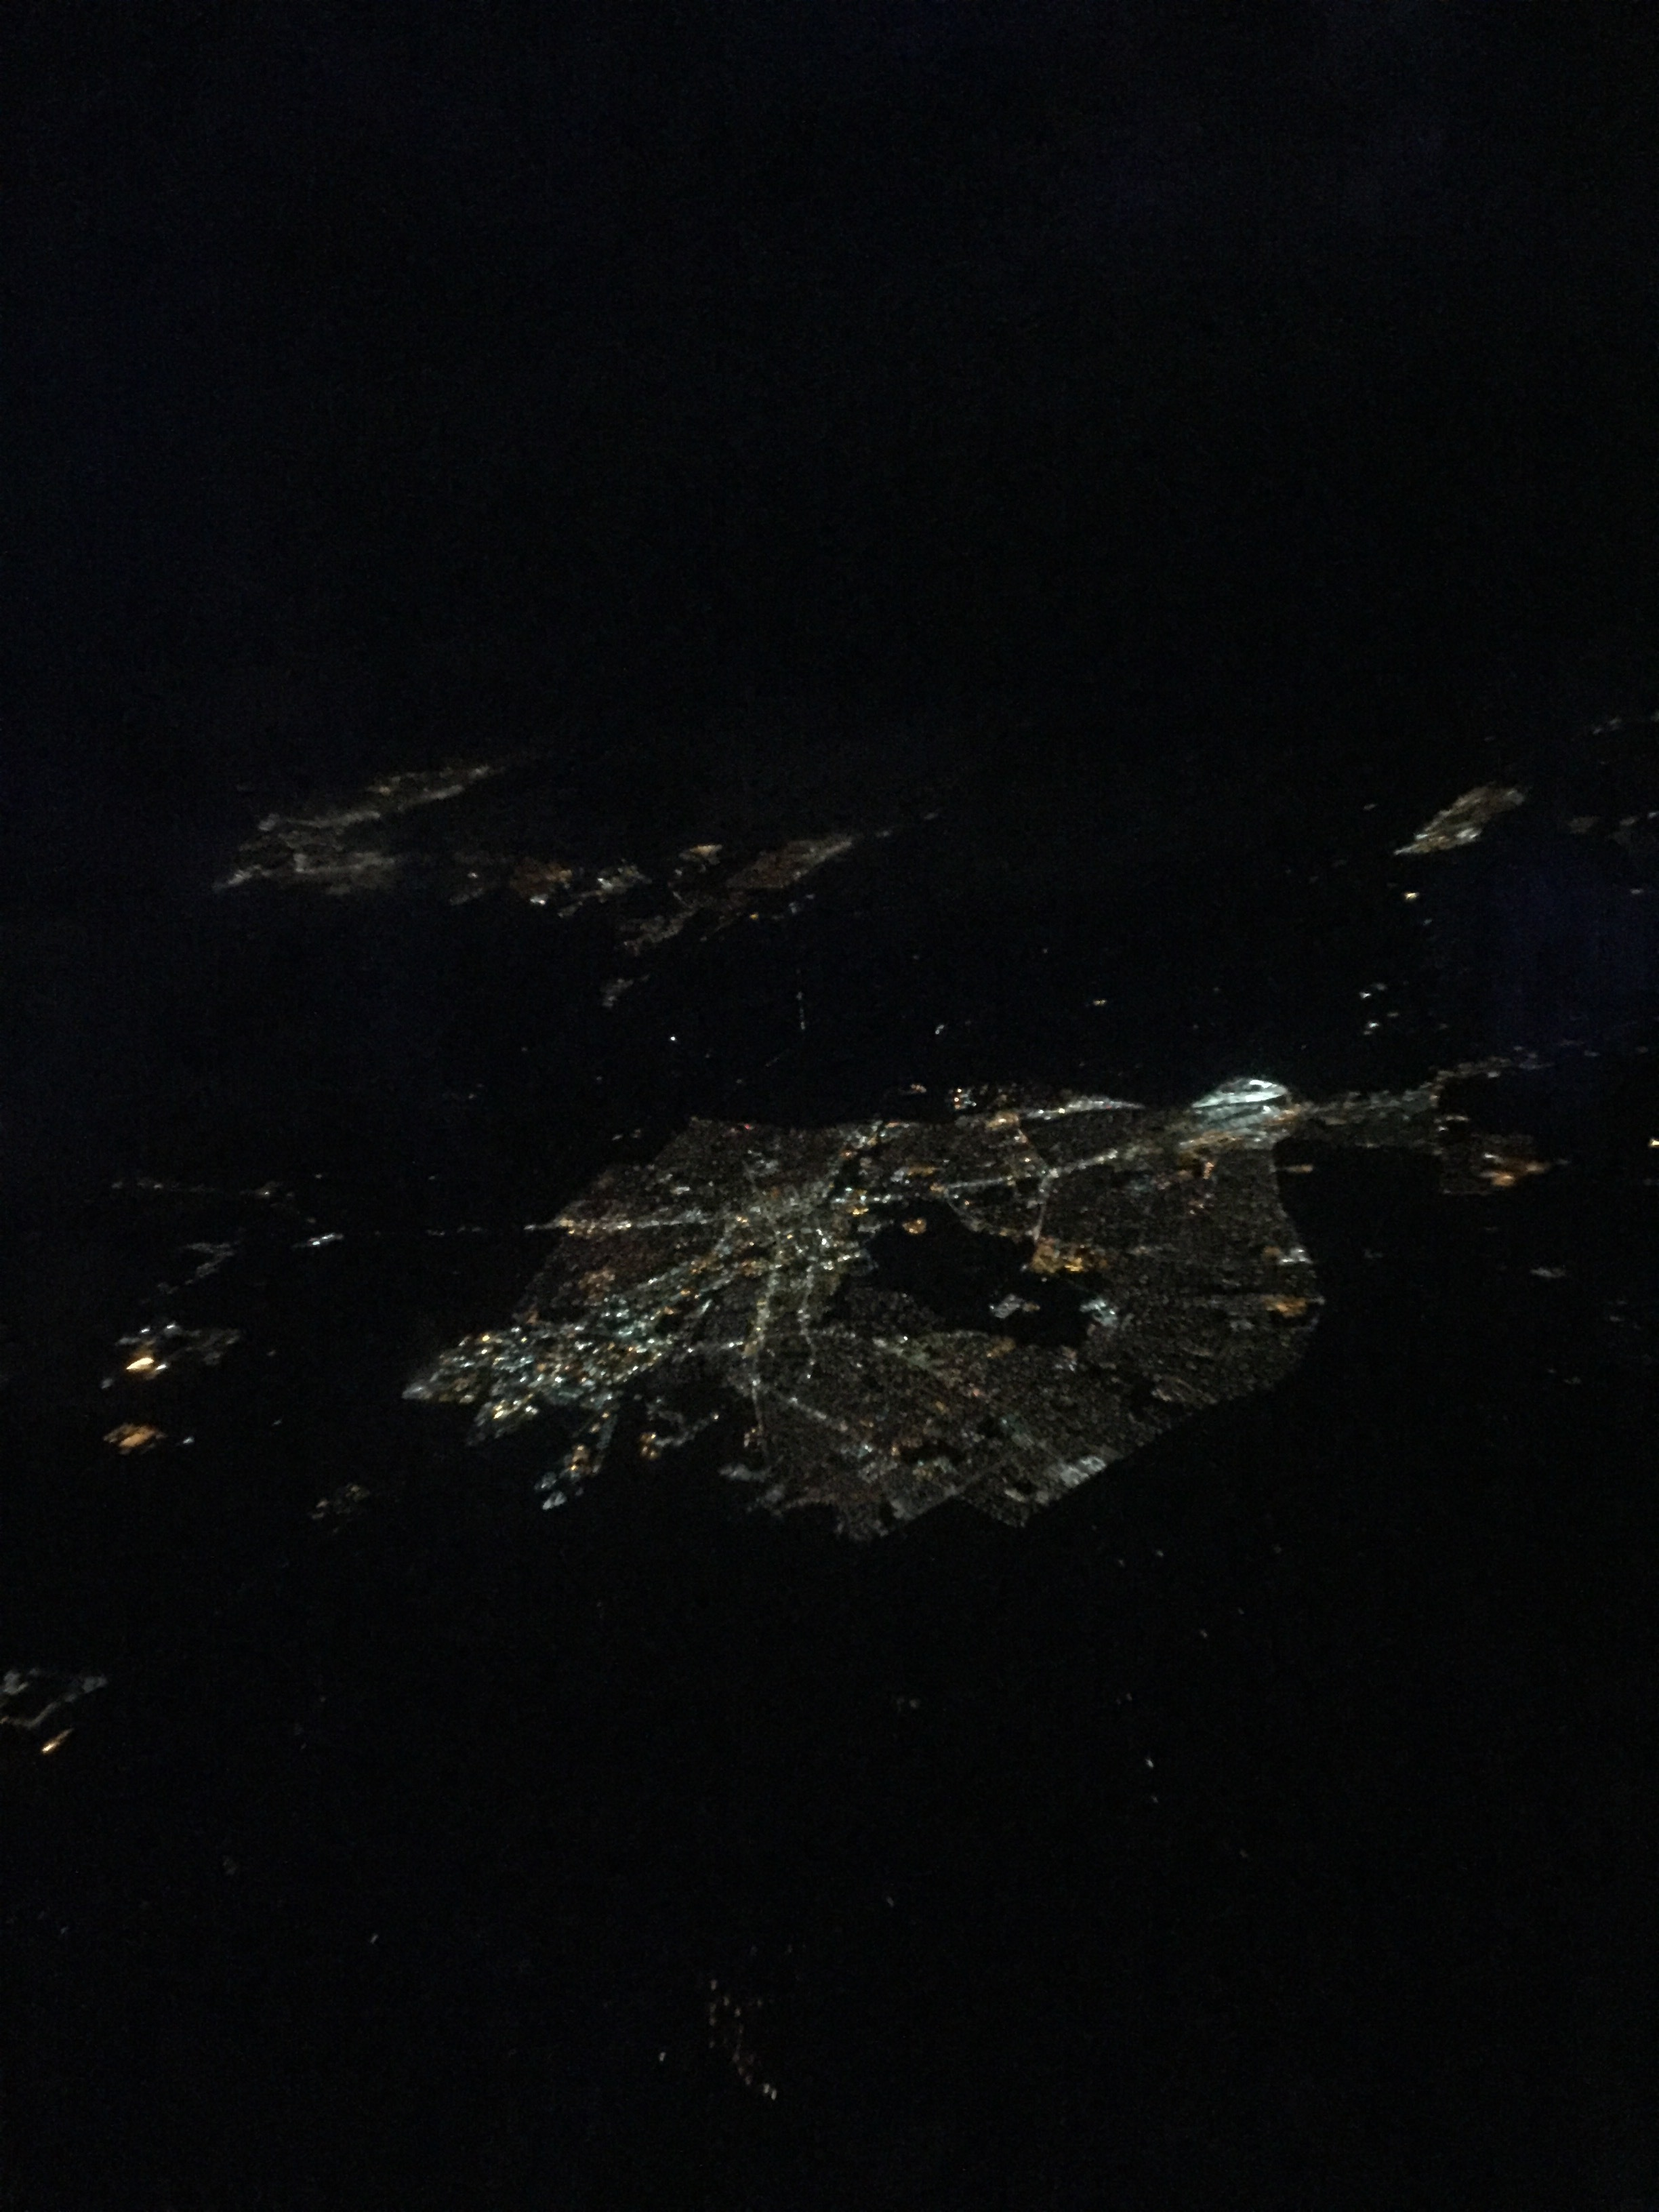 View from the plane. Isn't it crazy to see big cities like this? To see thousands of homes as tiny dots of light that can fit in the size of your palm.